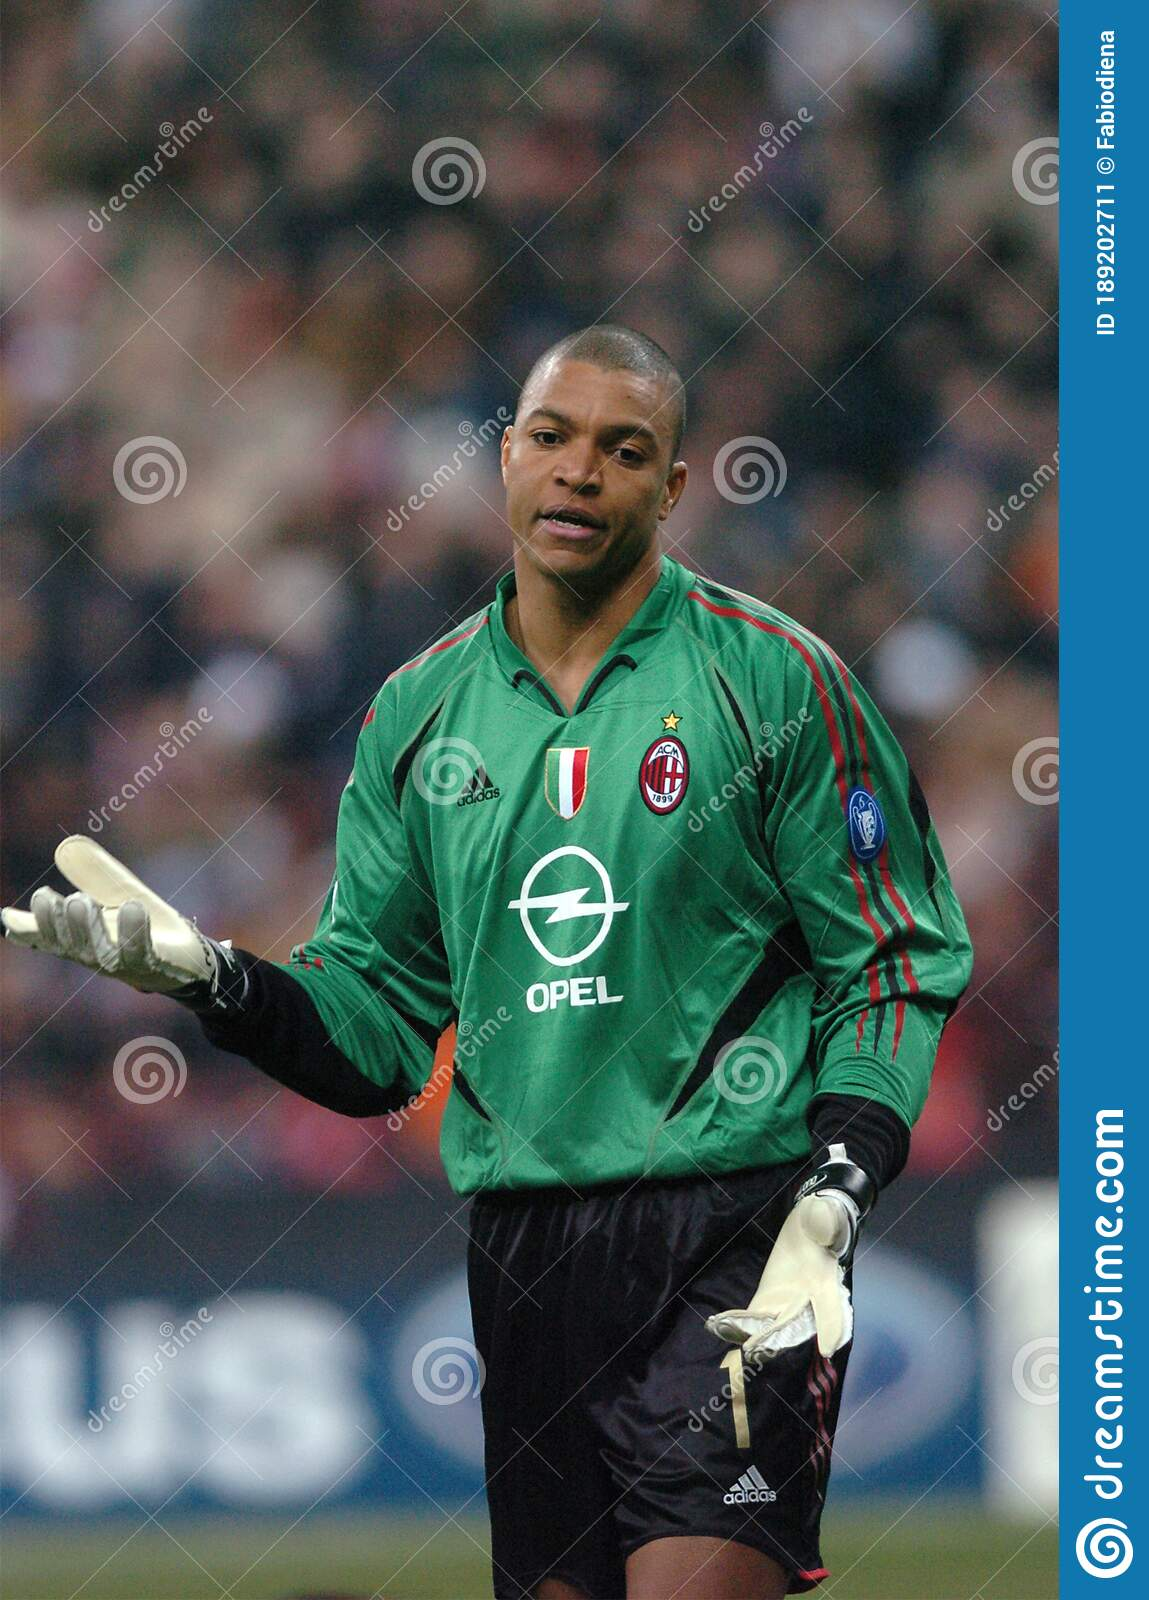 The Goalkeeper Of Milan Dida During The Match Editorial Photo Image Of Ball Playing 189202711